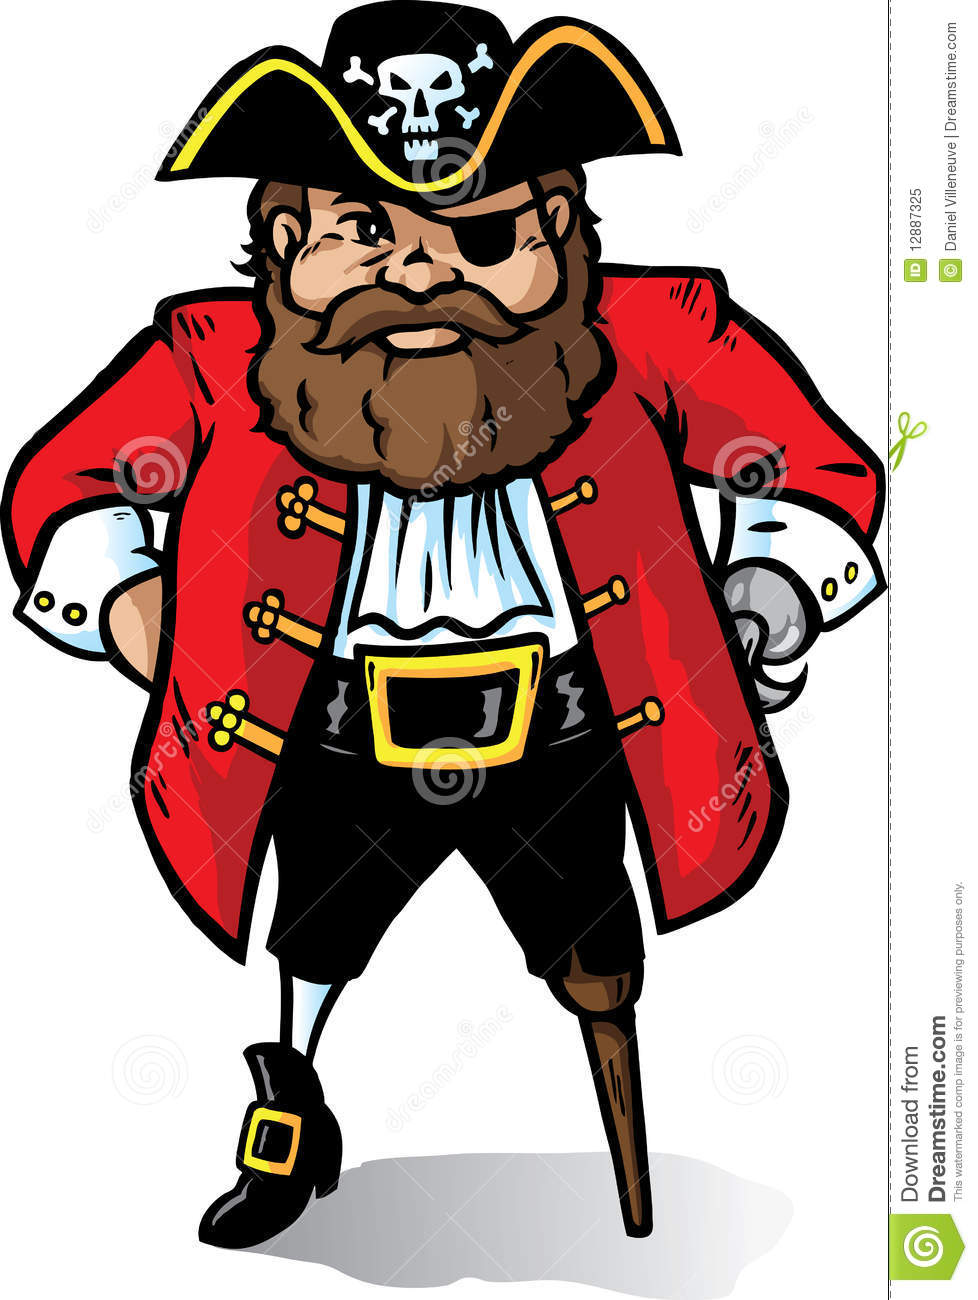 https://thumbs.dreamstime.com/z/pilote-de-pirate-12887325.jpg